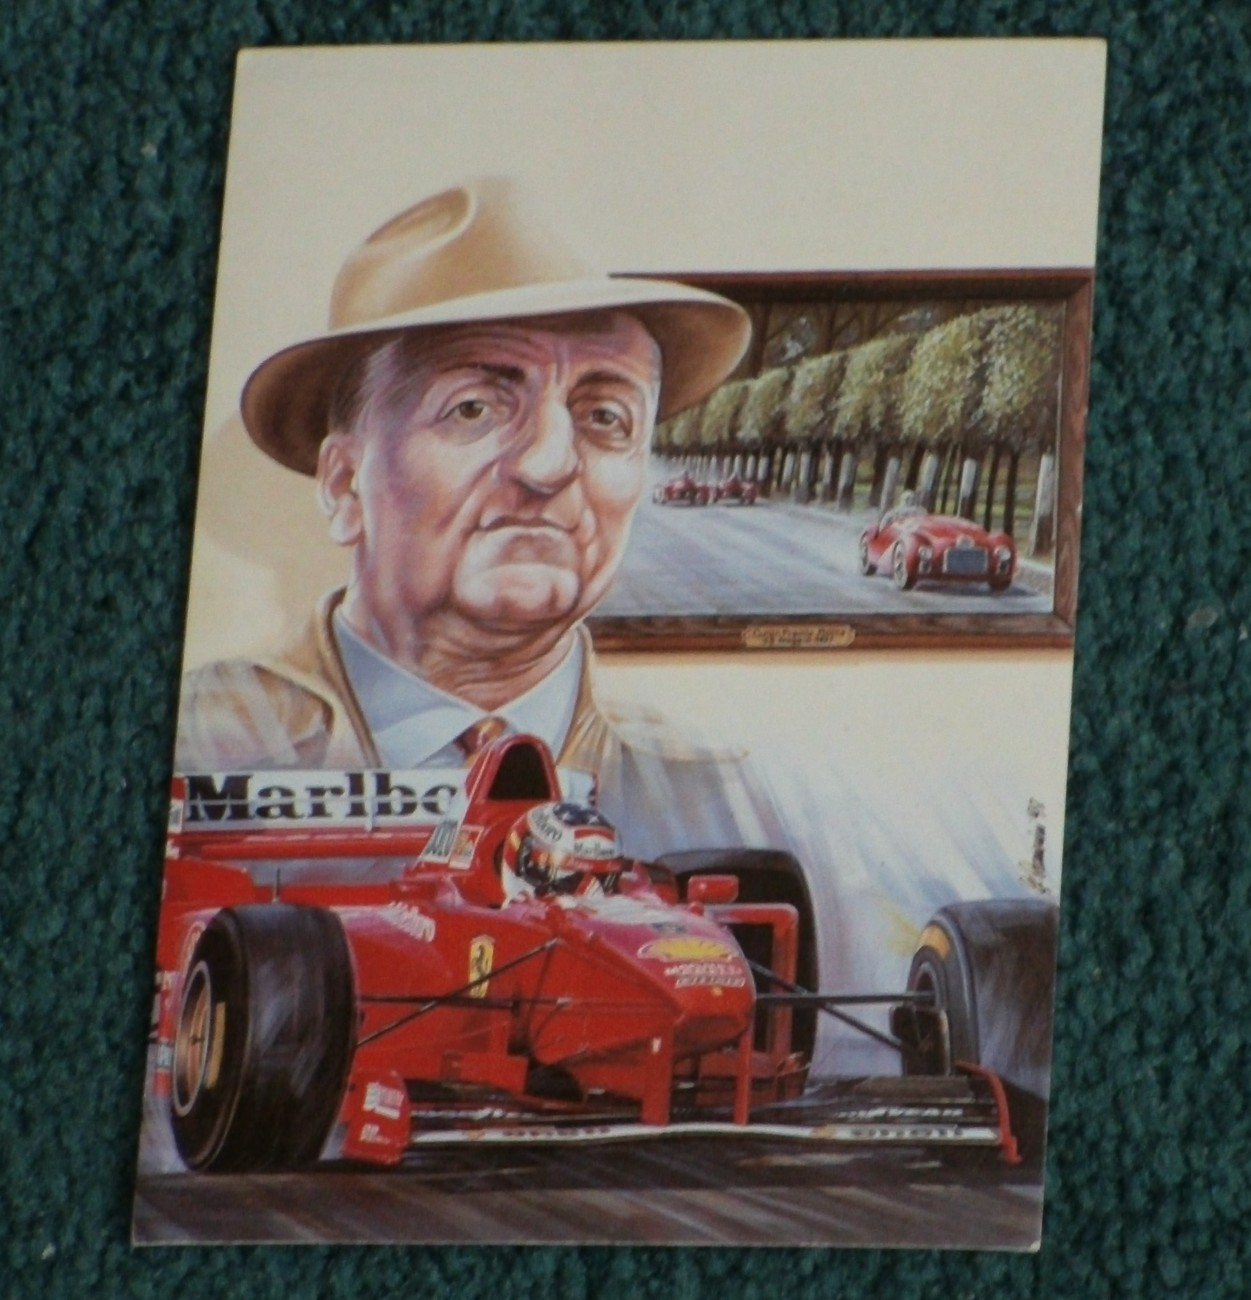 Primary image for FORMULA 1 Maranello 1947 Franco Ferrari + 97 Schumacher F310B Postcard Ltd. Ed.